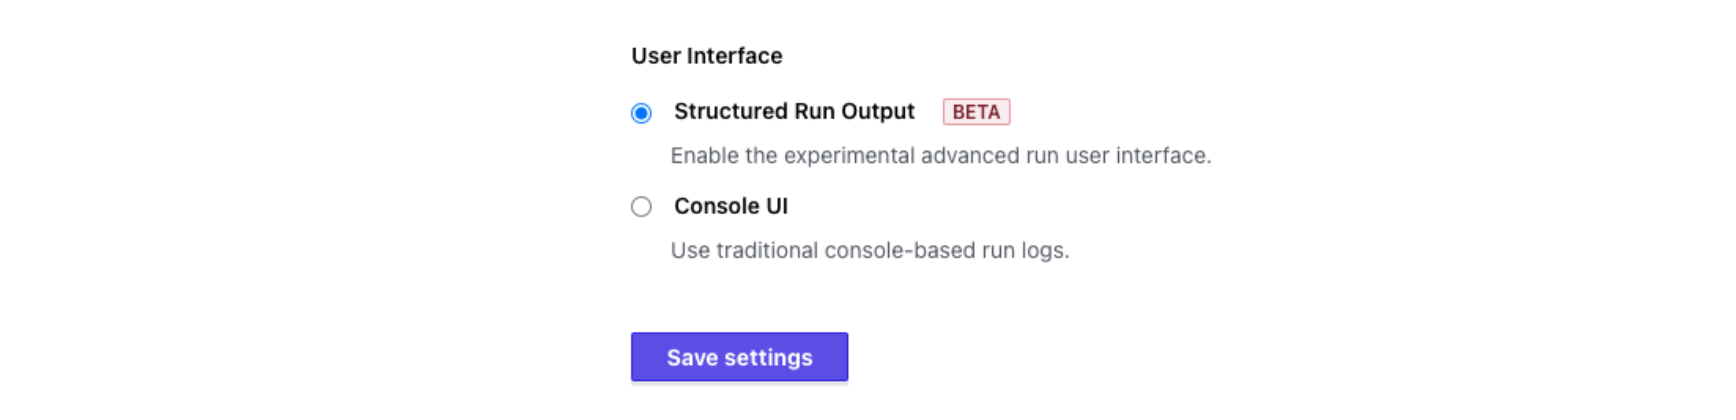 Save settings for user interface